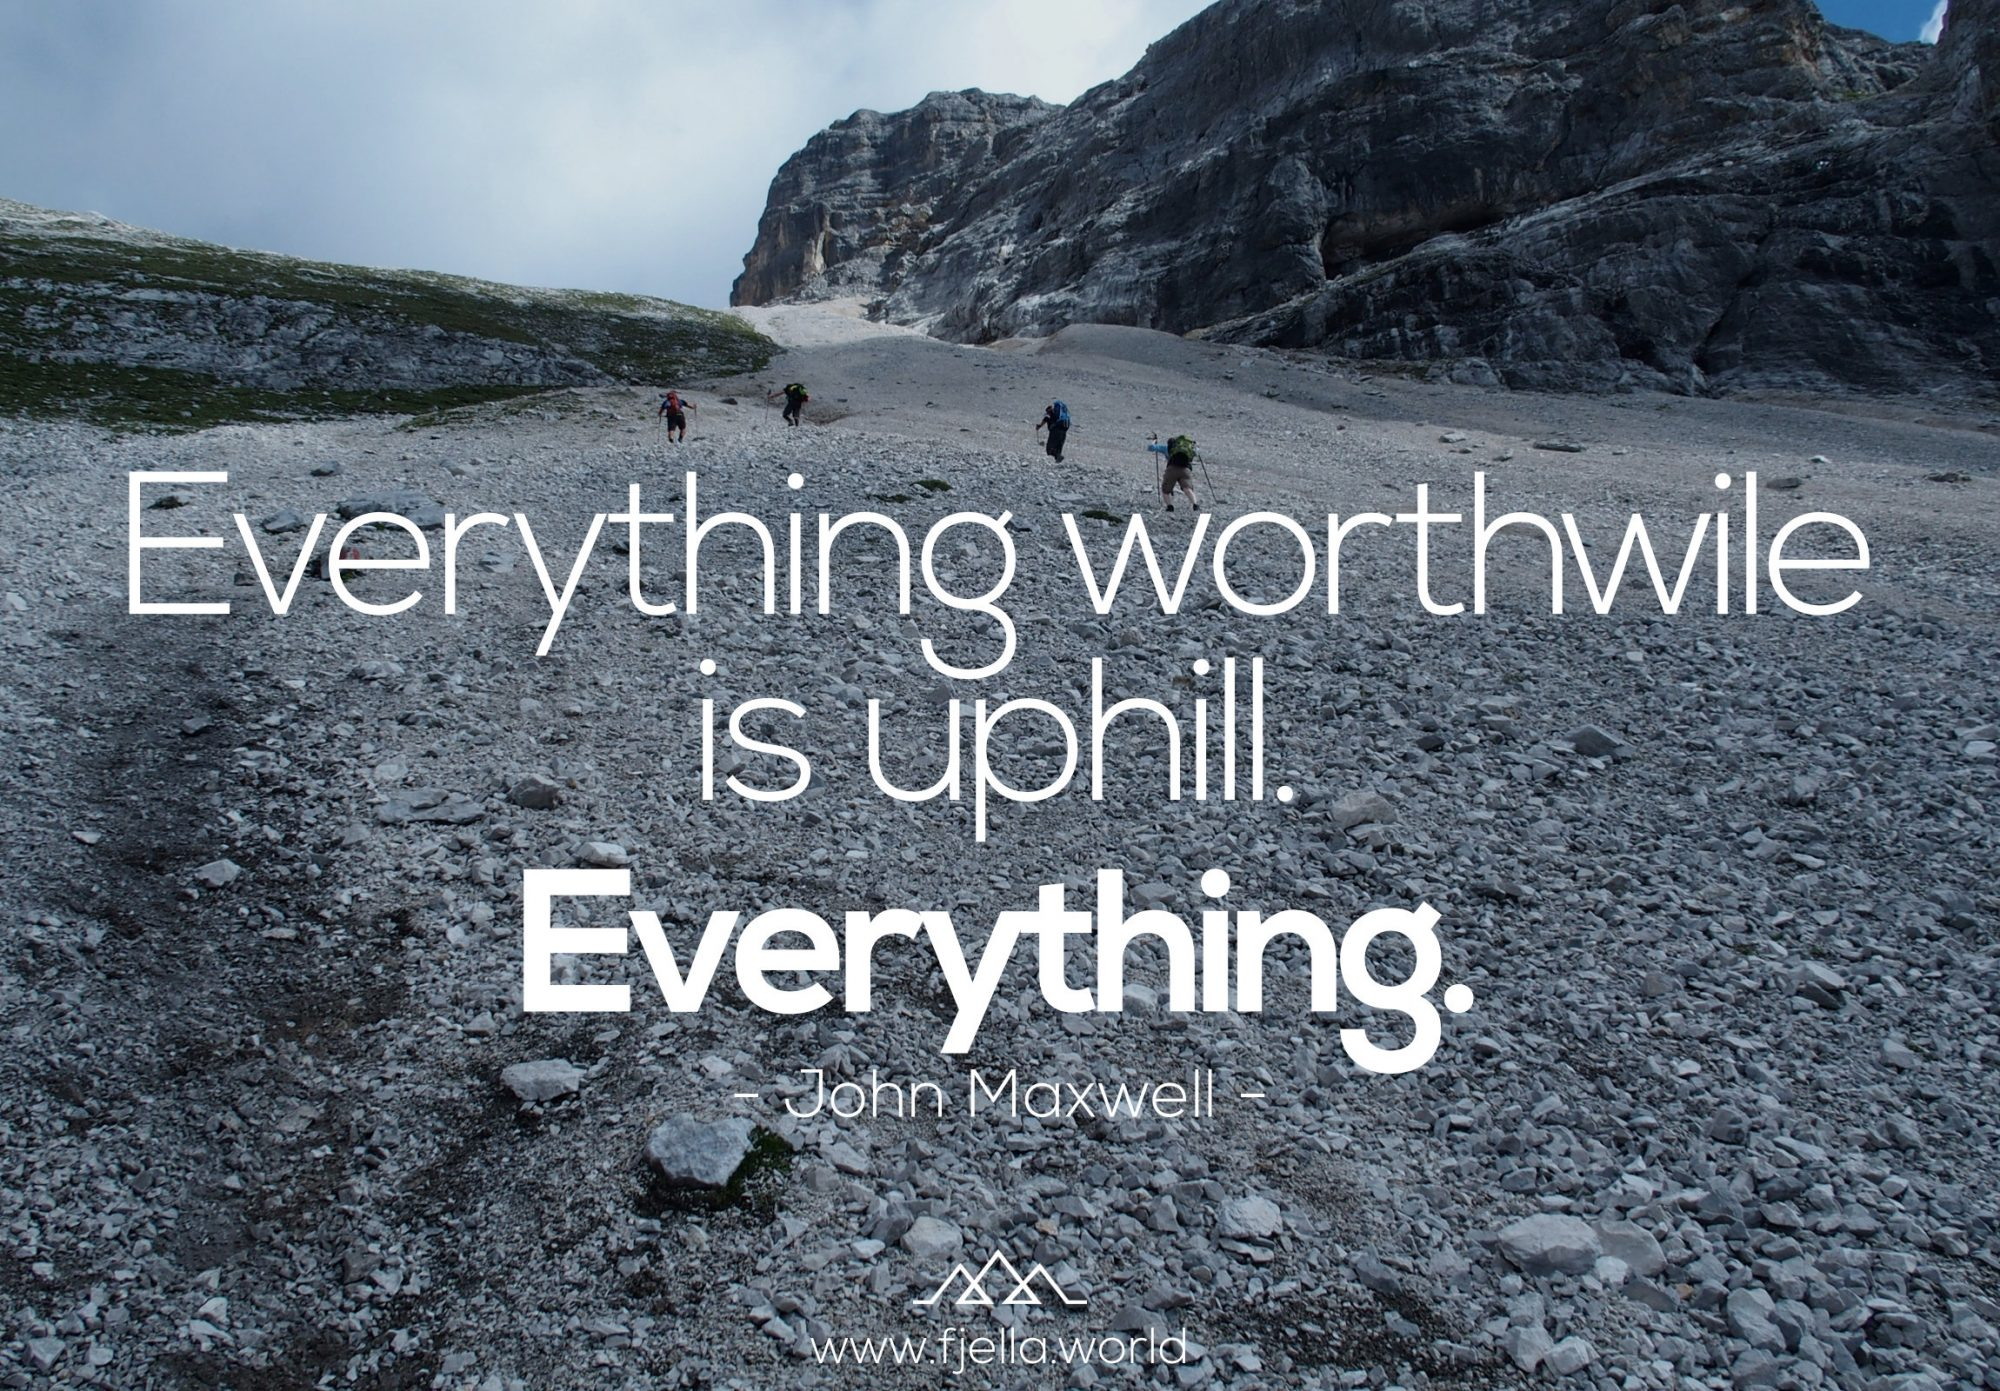 Everything worthwile is uphill. Everything. John Maxwell. Bergzitat, Zitate, Sprüche, Bergzitate, Hiking Quotes